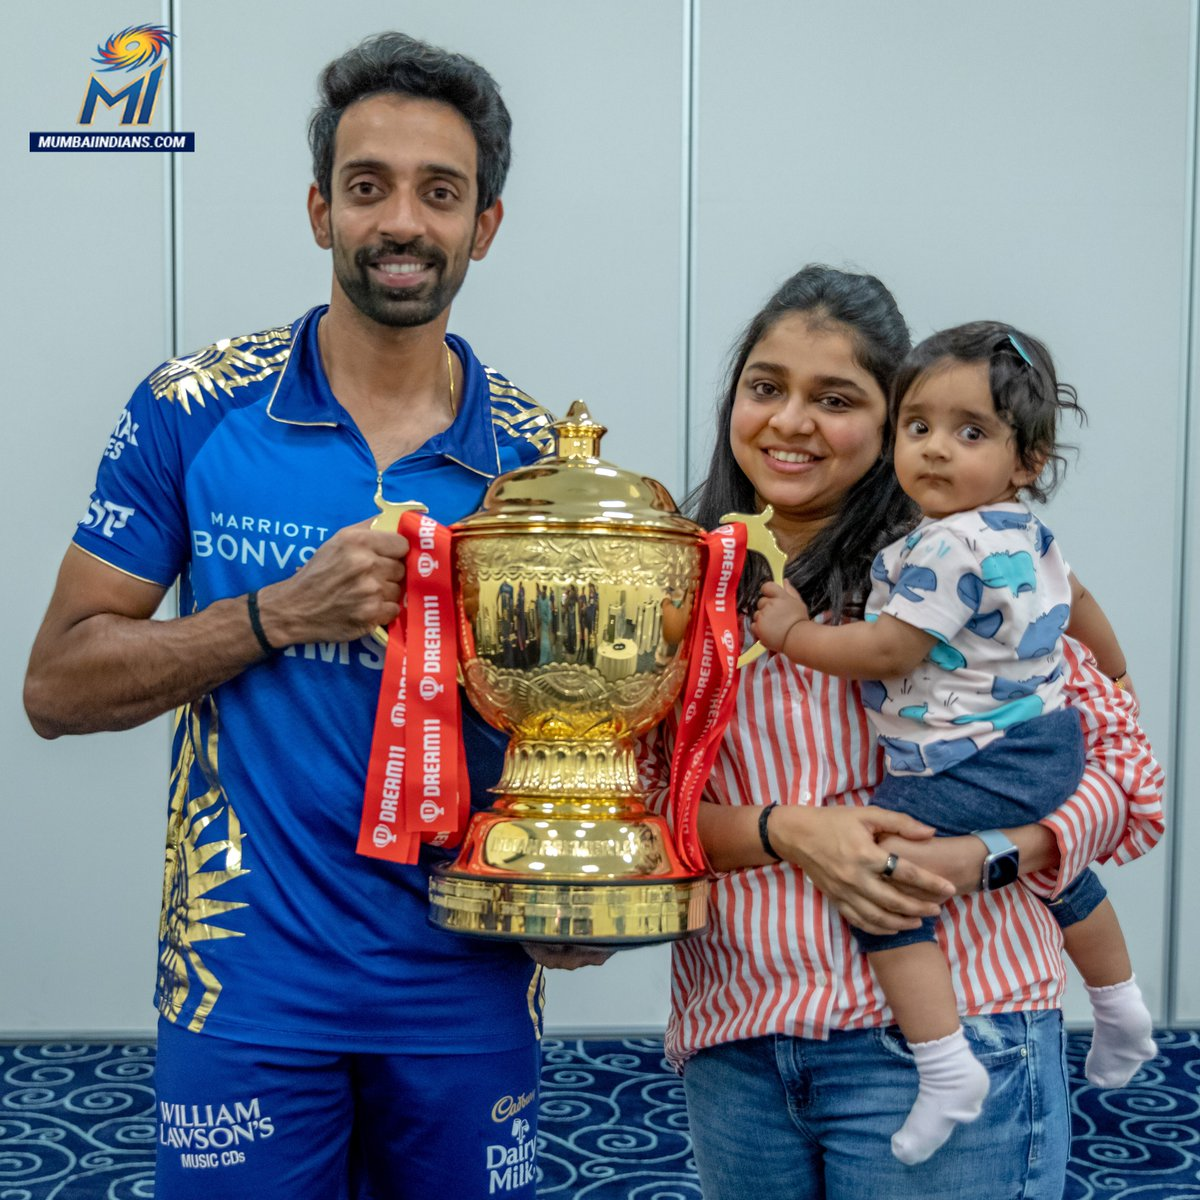 A first birthday for Dhawal's daughter Nitara & Pollard's son Kaiden also turns a year older 🎂💙  Wishing these two a very #HappyBirthday 🎊  #OneFamily #MumbaiIndians @dhawal_kulkarni @KieronPollard55